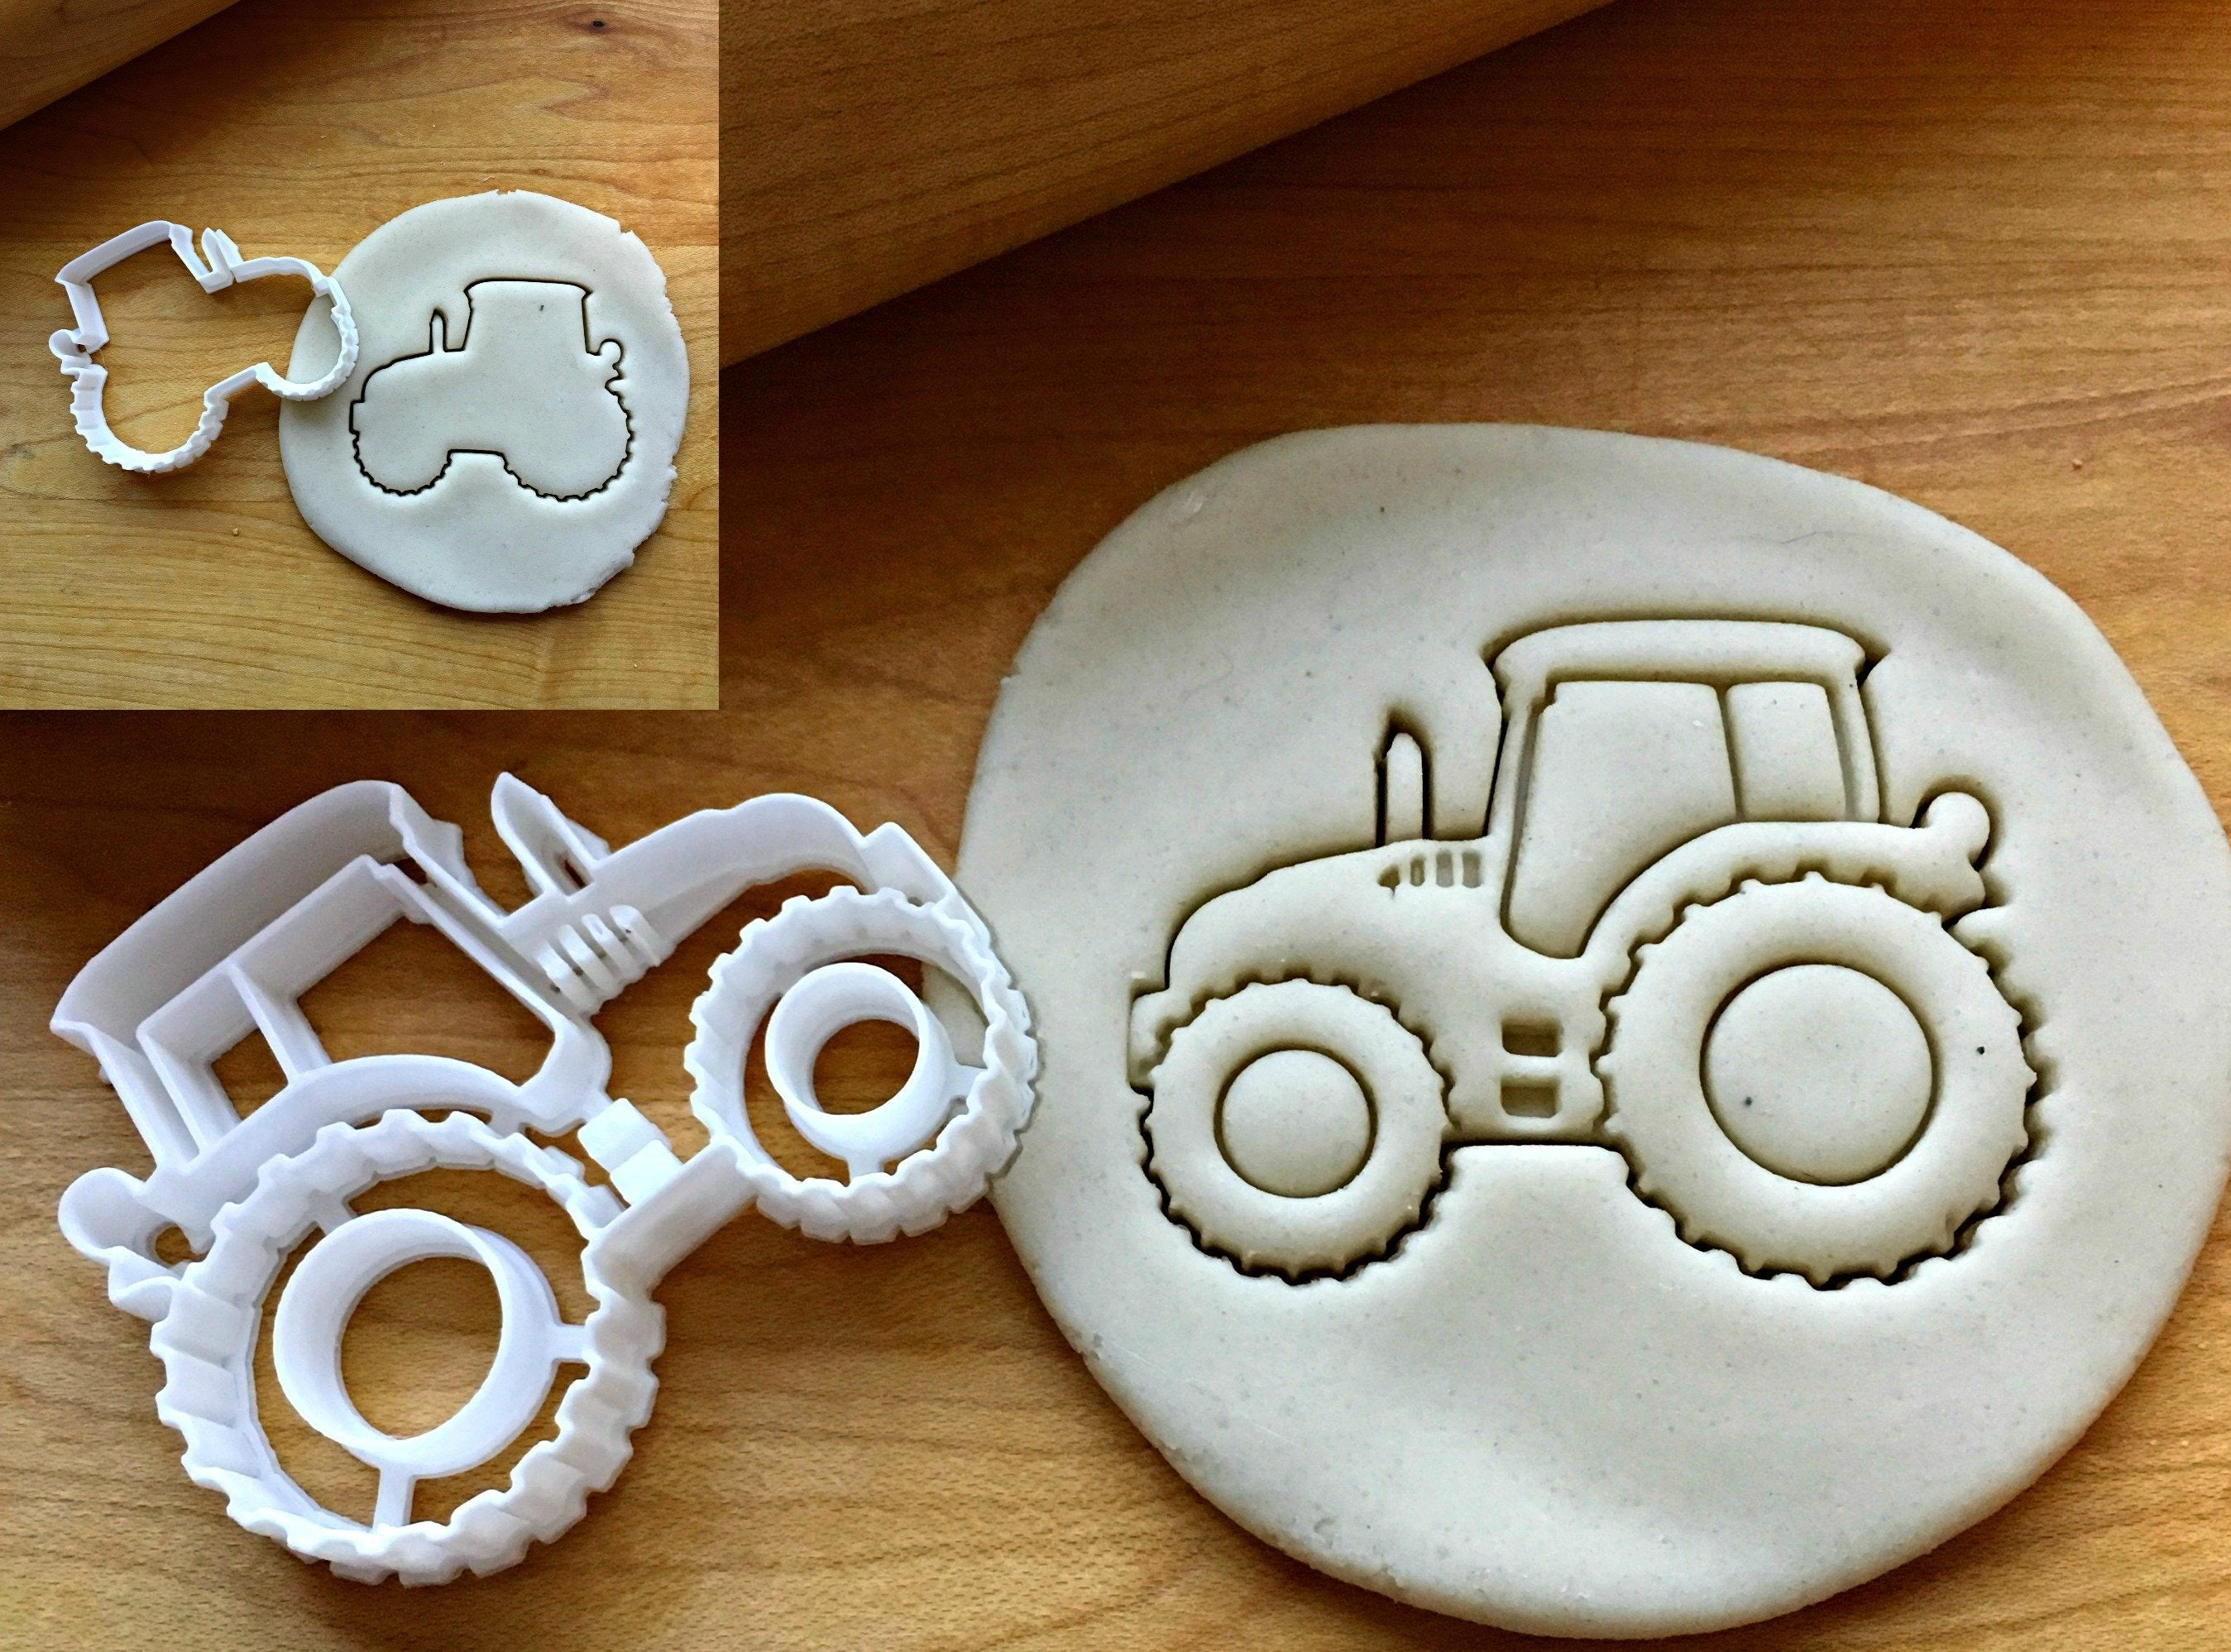 Set of 2 Modern Tractor Cookie Cutters